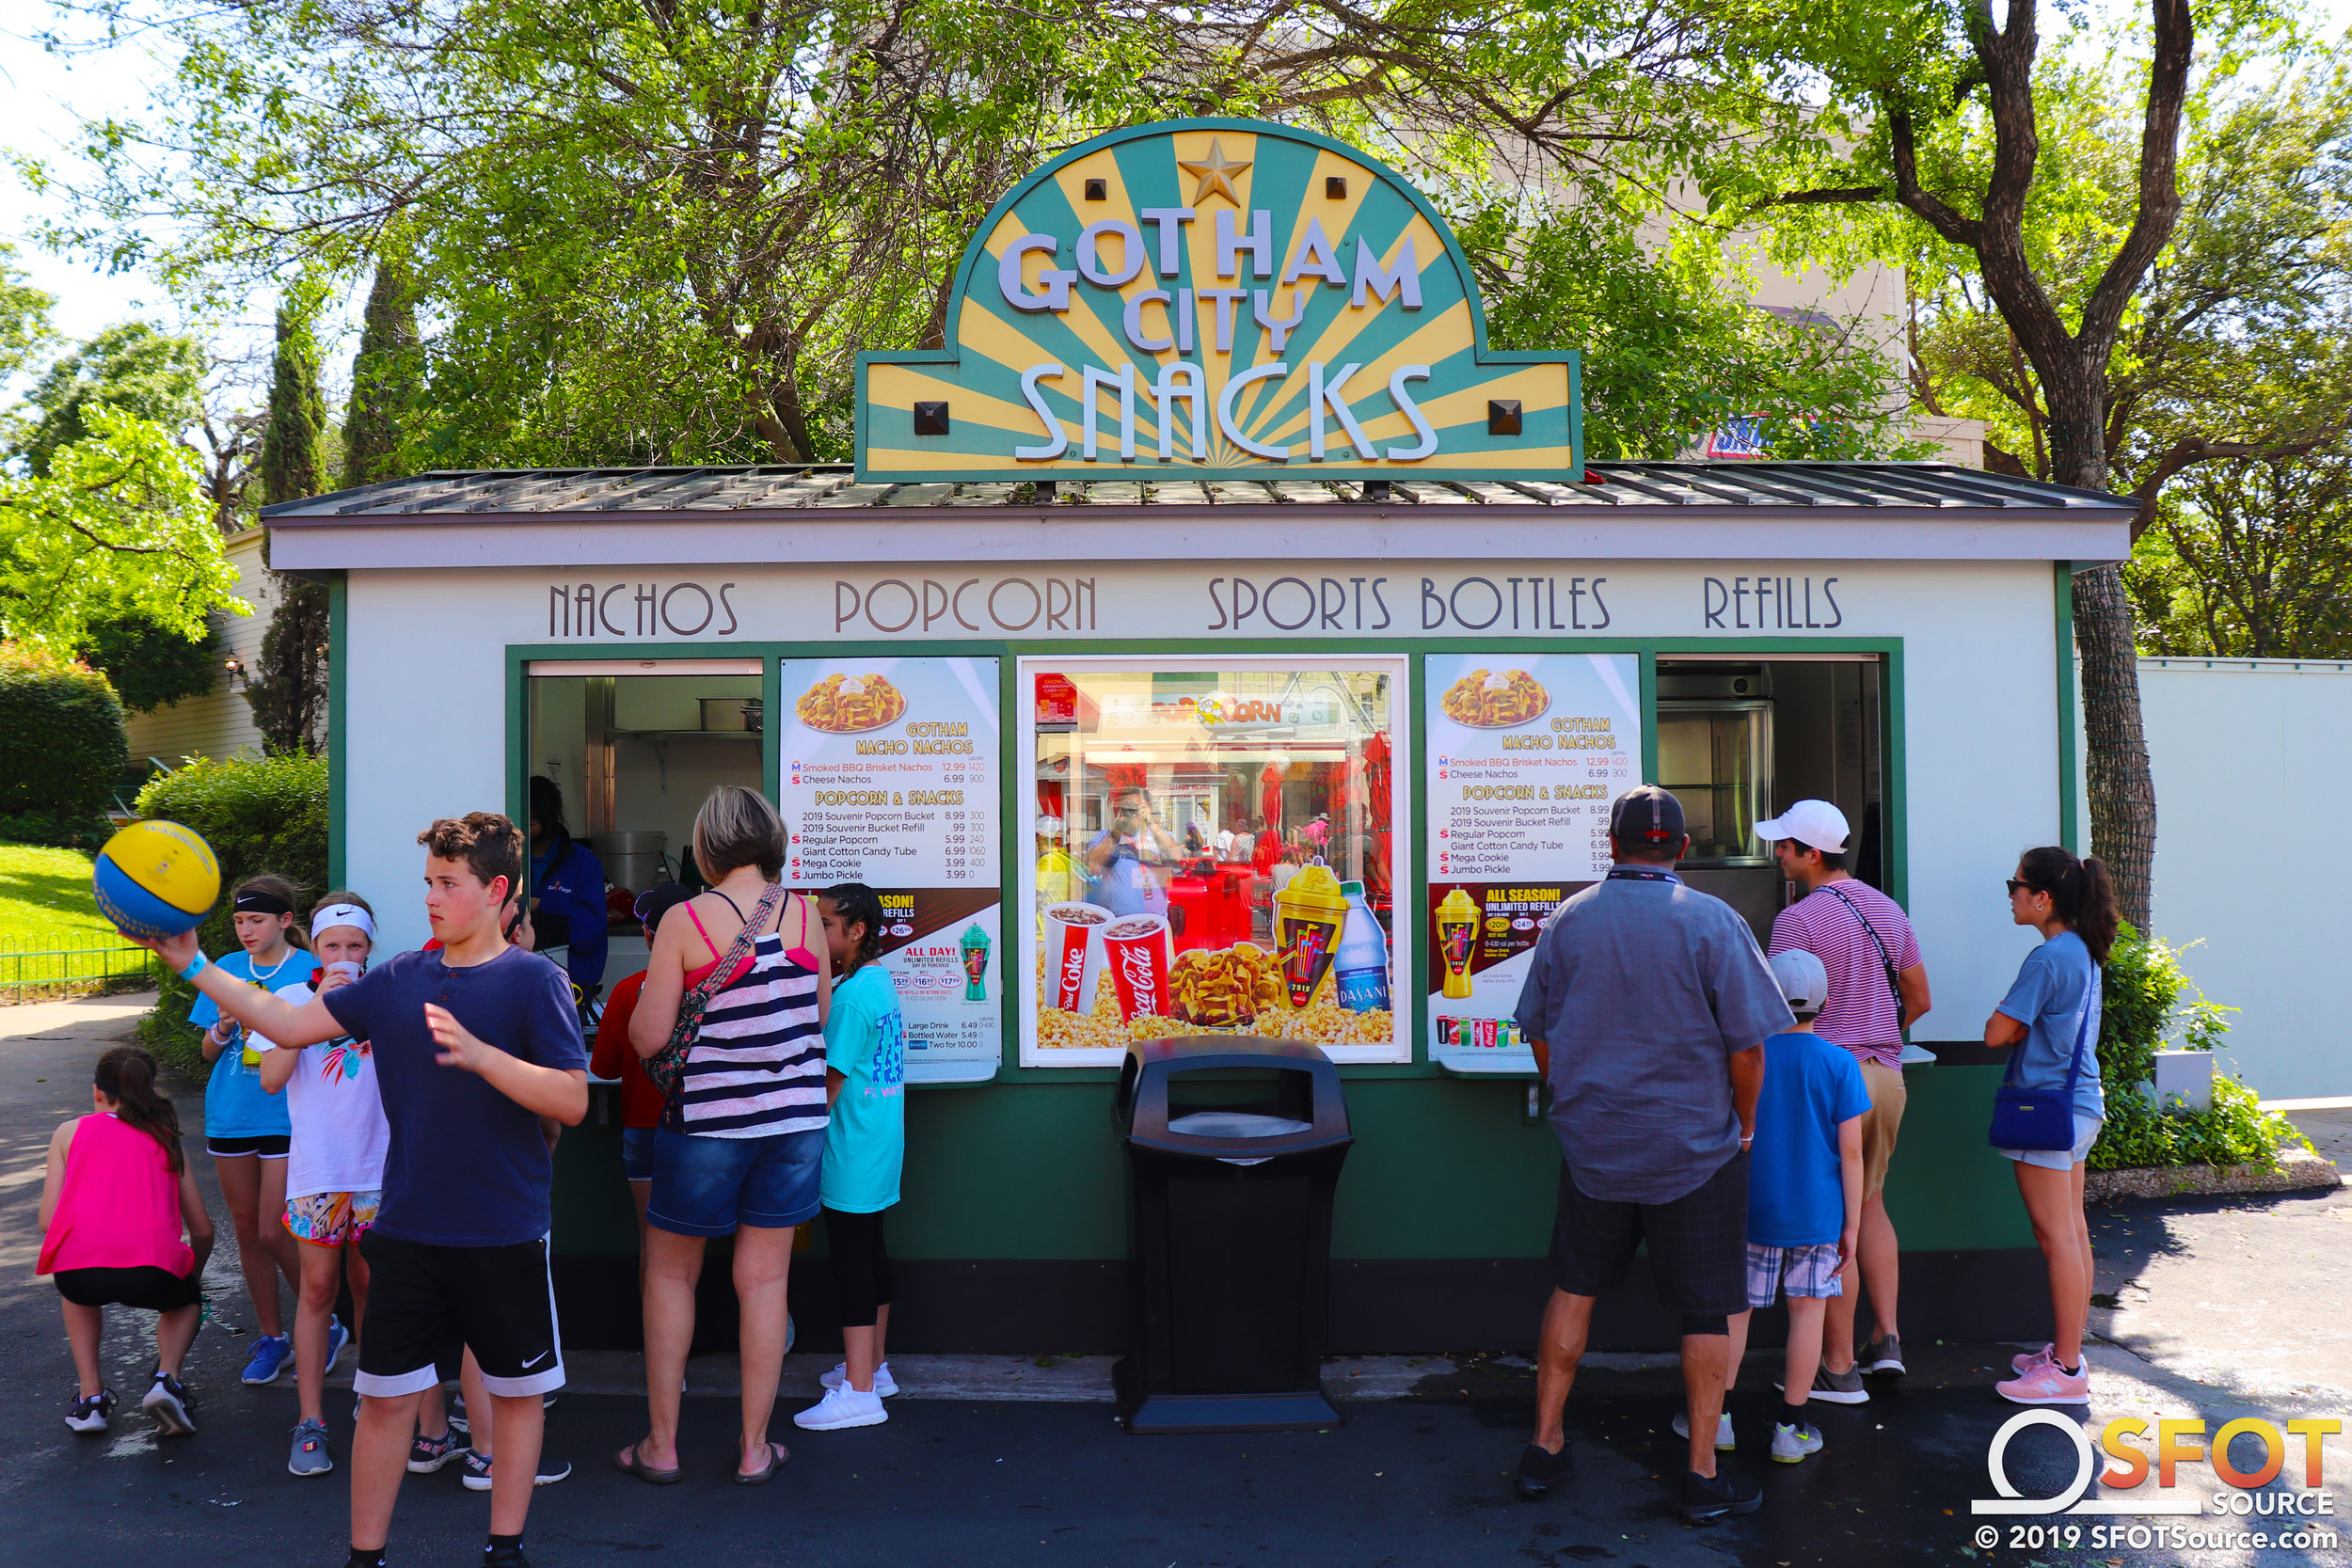 Gotham City Snacks features multiple Dining Pass options.